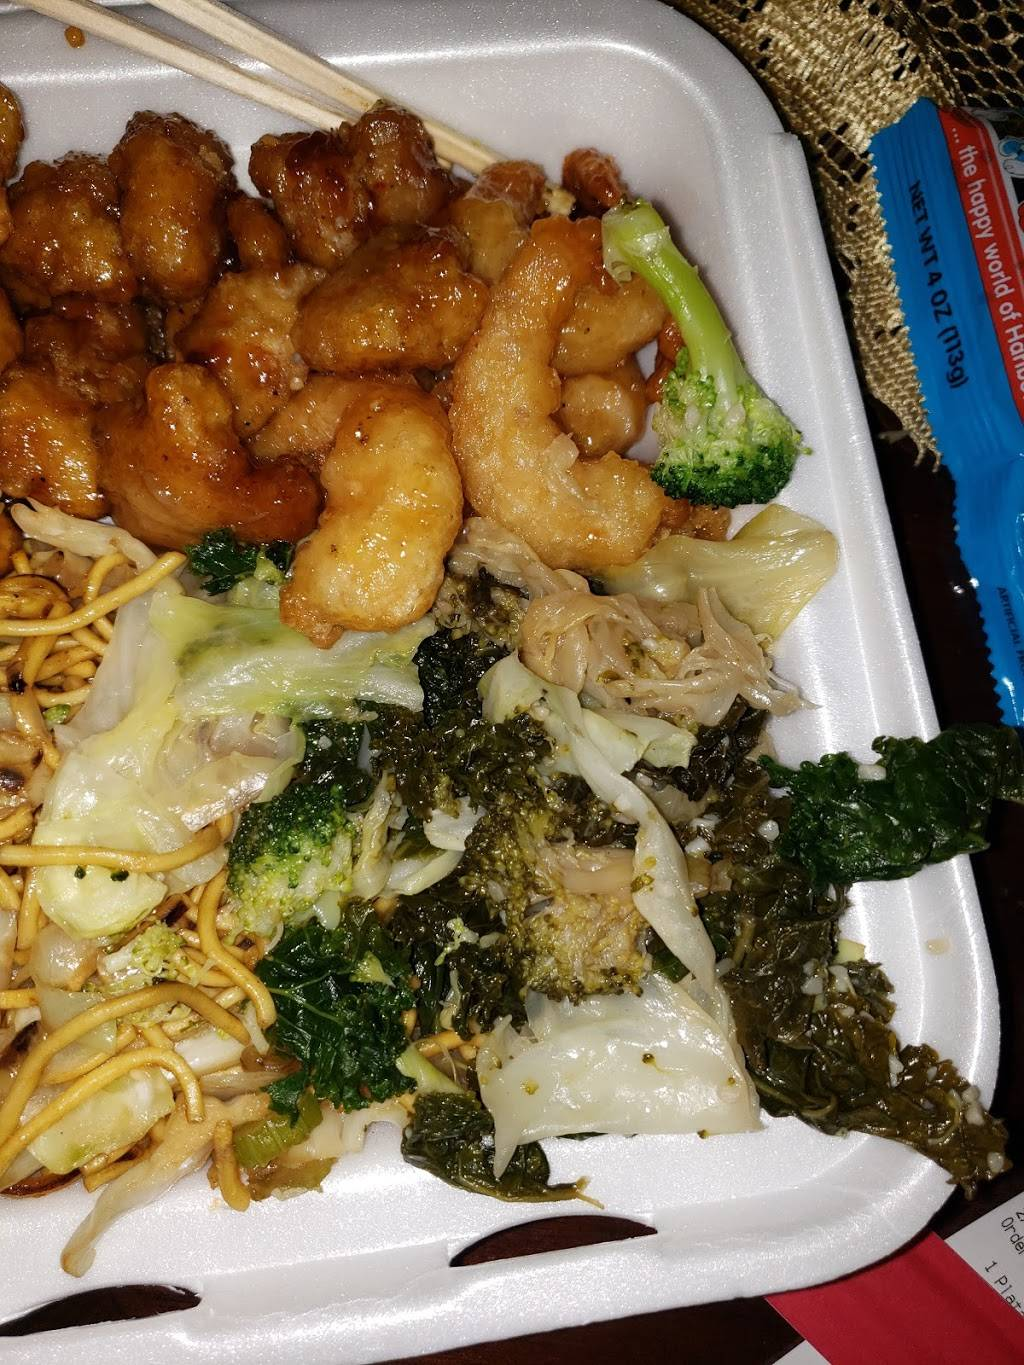 Panda Express | restaurant | 2116-2198 I-35 Frontage Rd, Gainesville, TX 76240, USA | 9406680917 OR +1 940-668-0917